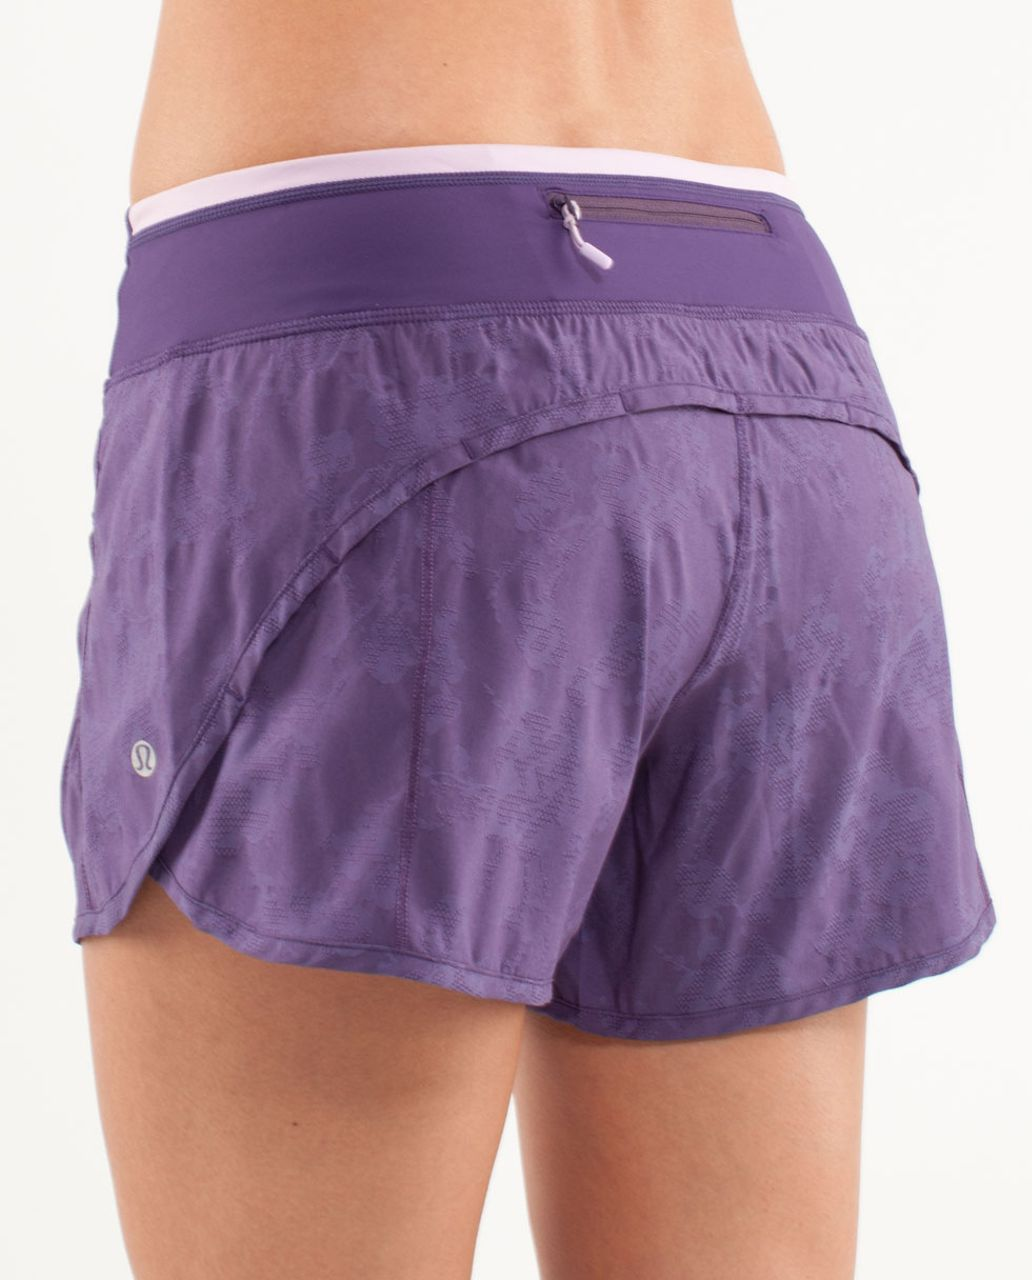 Lululemon Turbo Run Short - Concord Grape